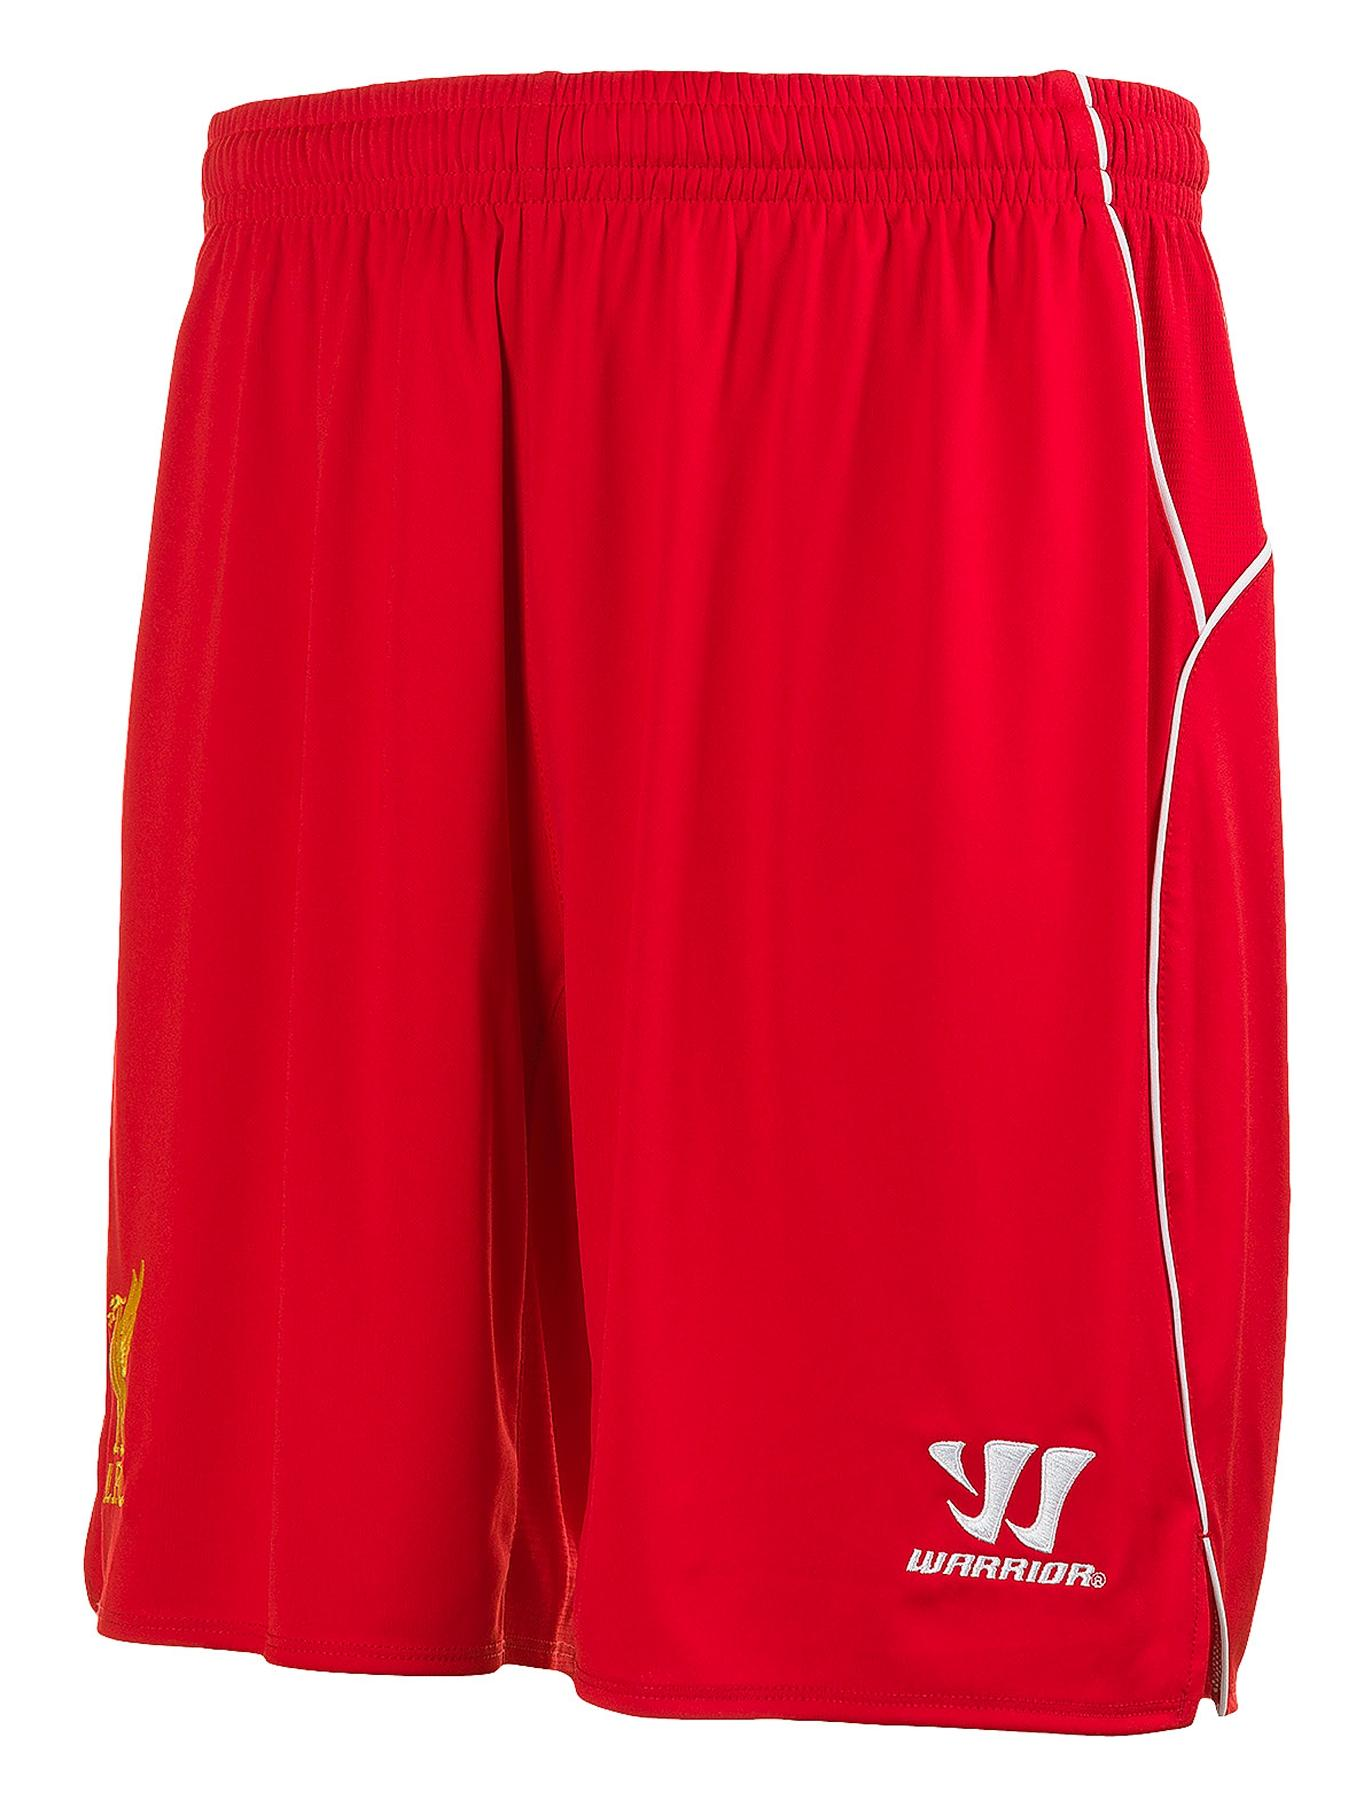 Liverpool FC Home Mens Shorts, Red